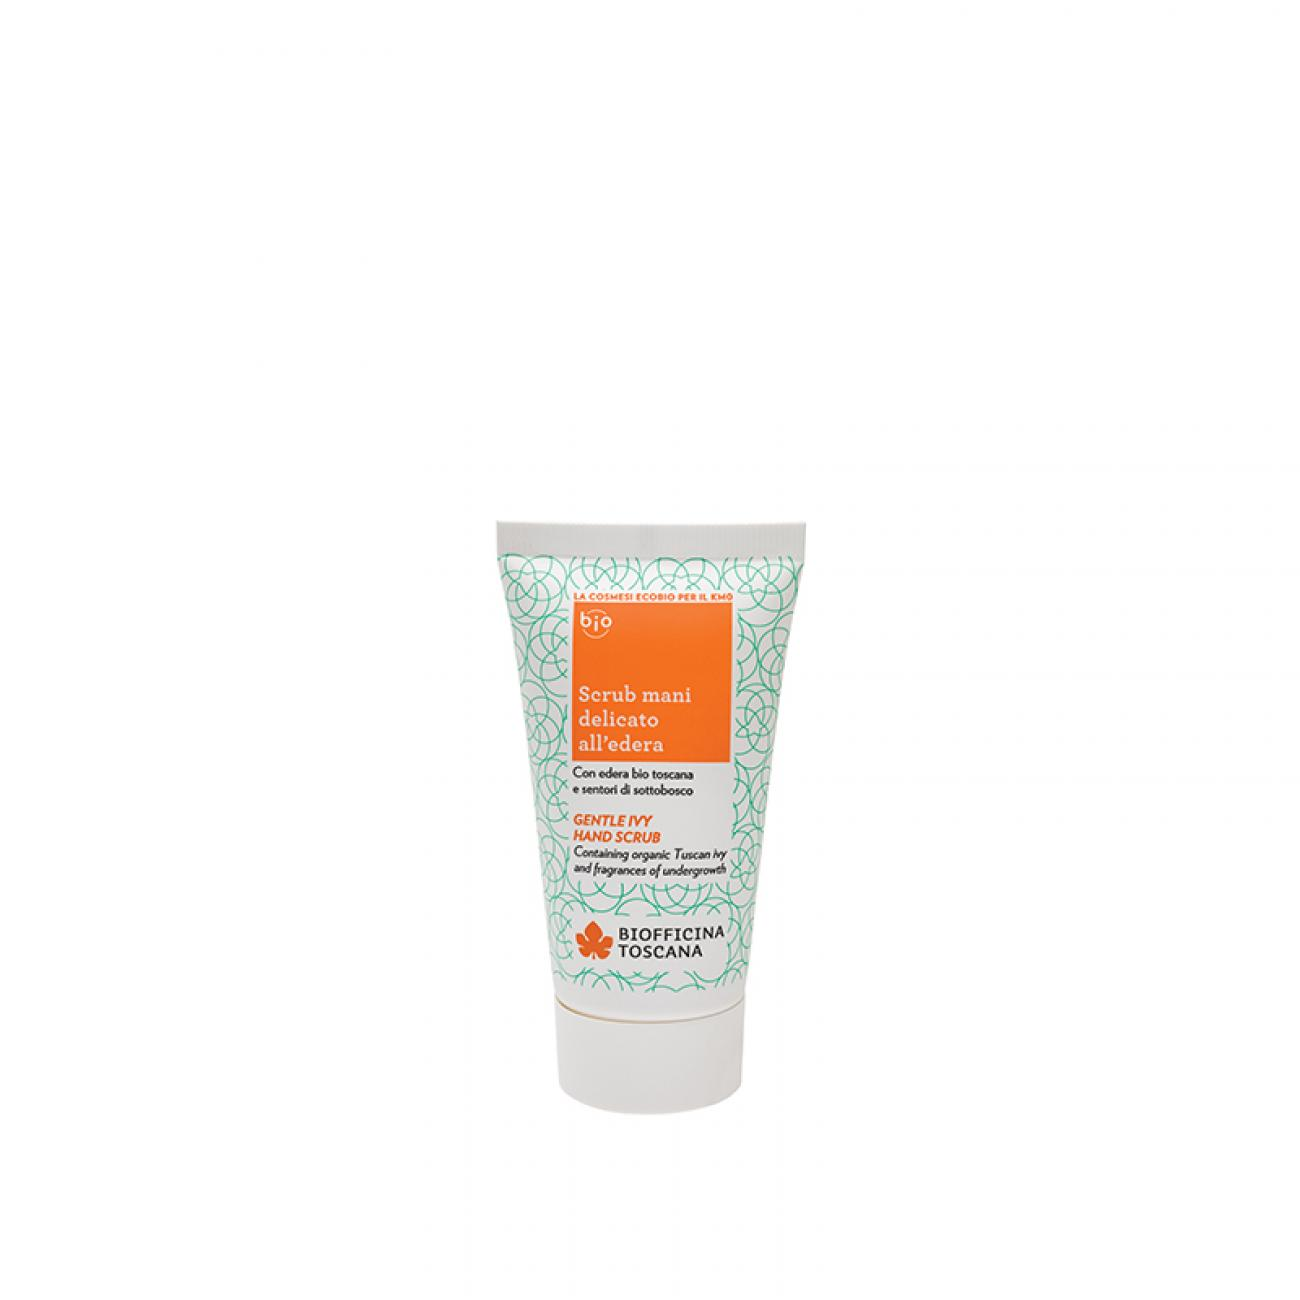 Scrub mani delicato all'edera 50ml